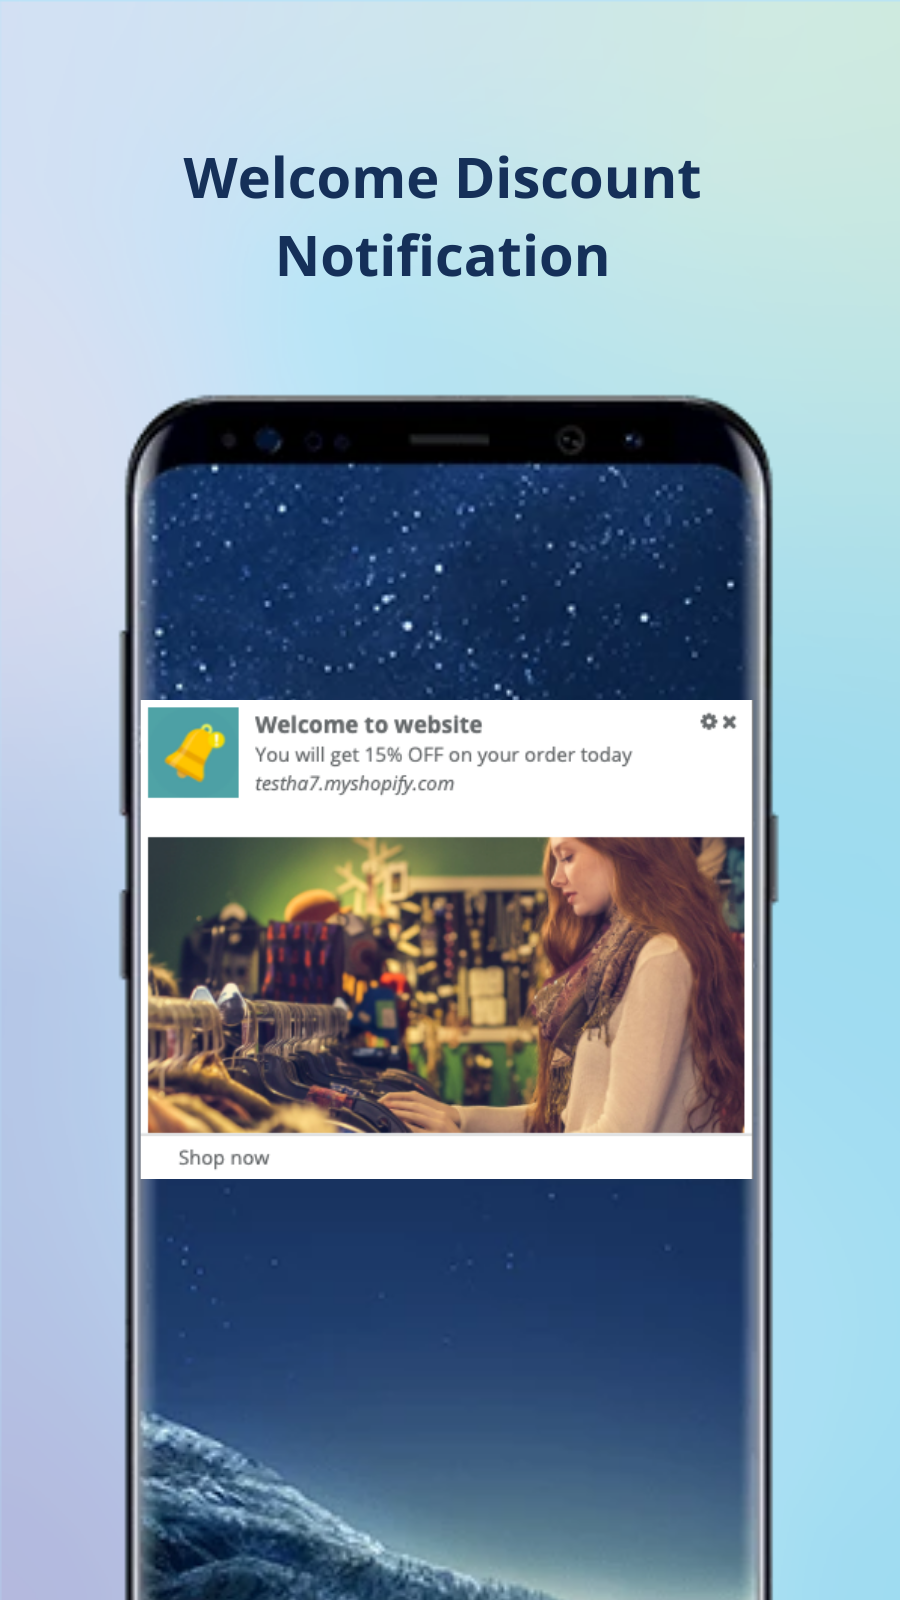 Mobile Push Notifications app: welcome discount